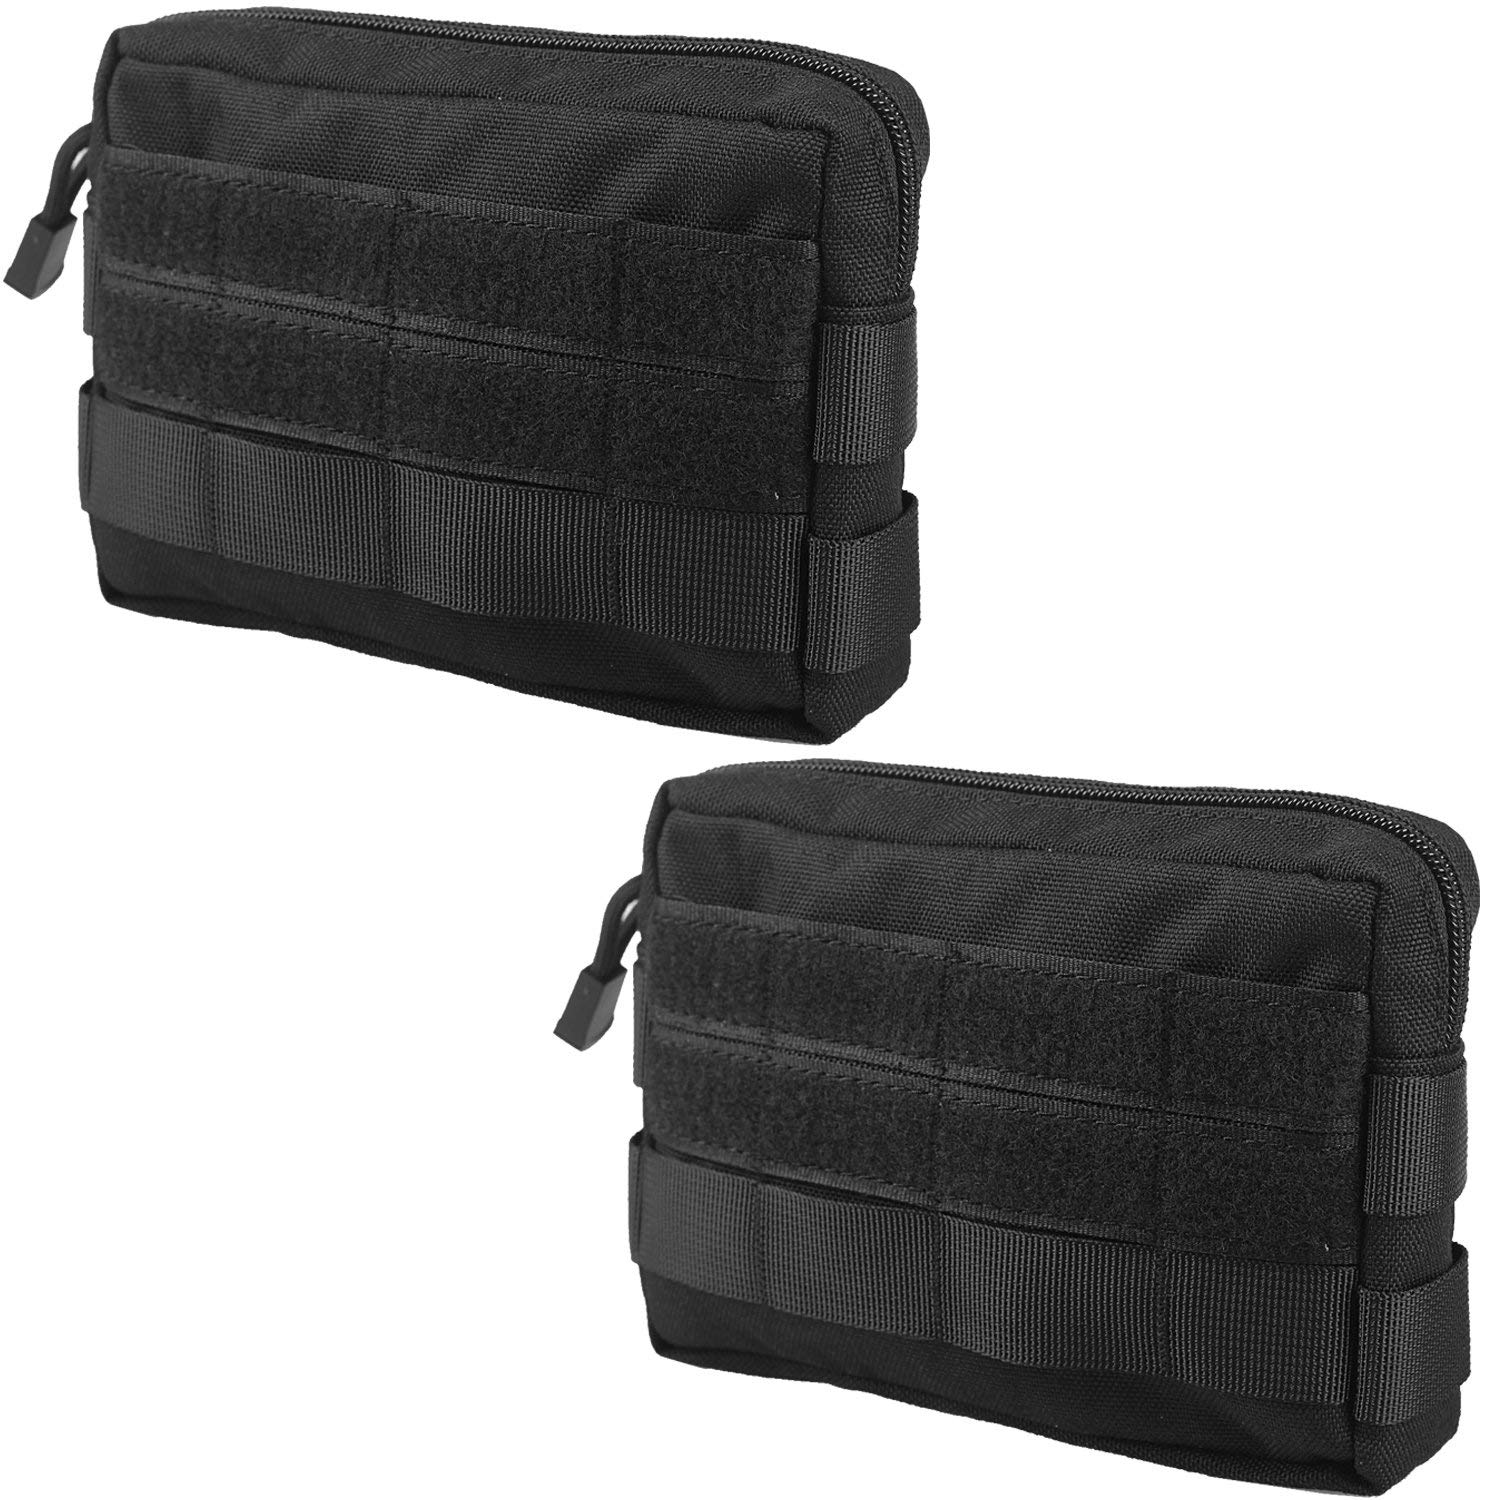 d3f78d813751 Infityle Tactical MOLLE Pouches - EDC Compact Water-Resistant Multi-Purpose  Utility Pouch Gadget Gear Hanging Waist Bags